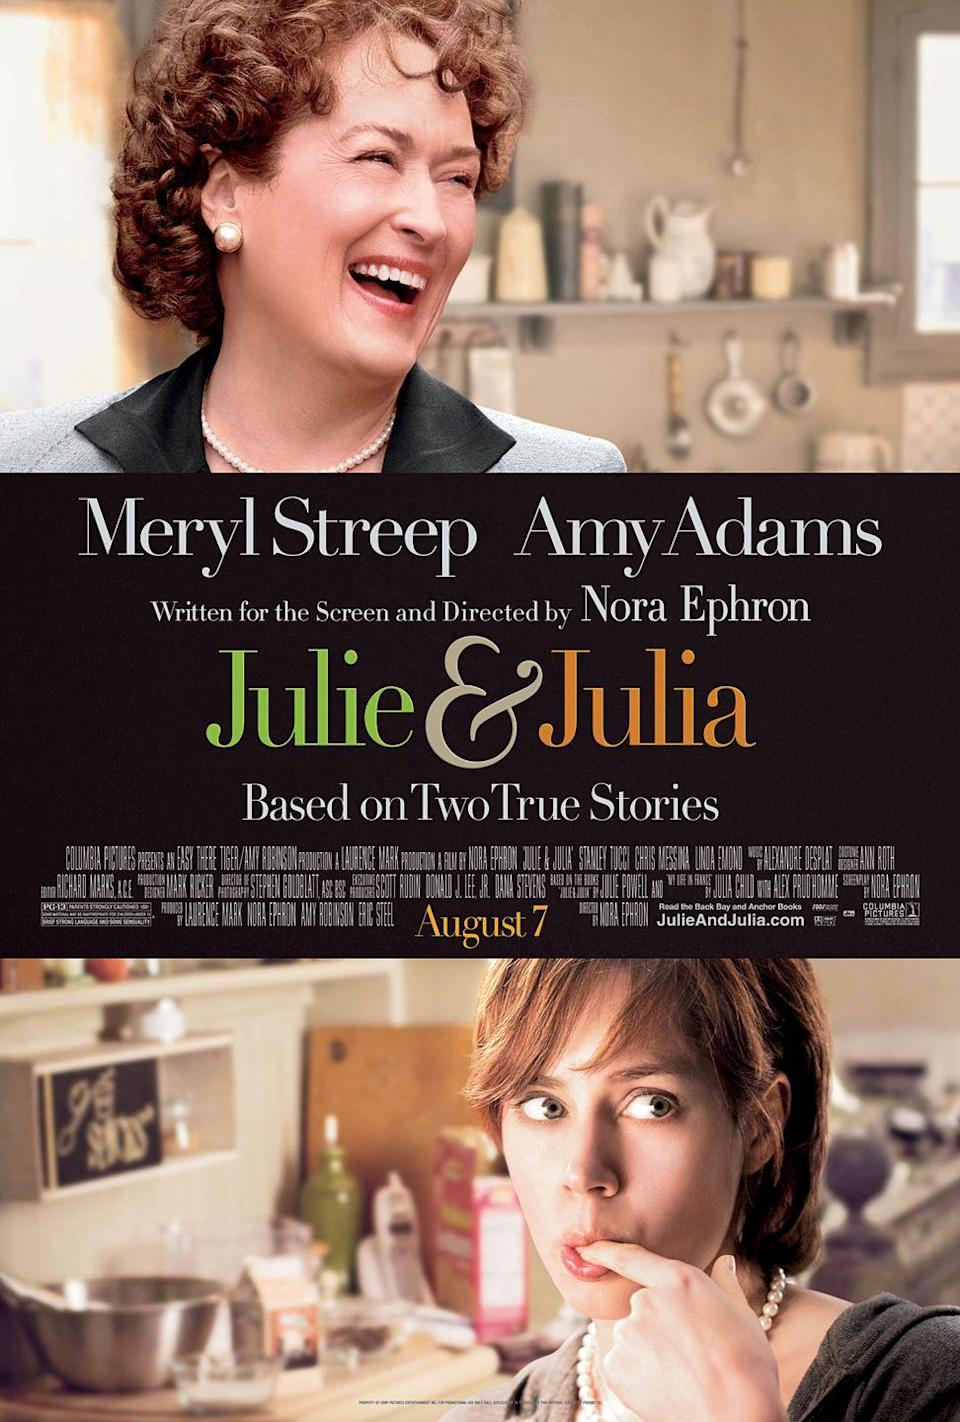 """<p><a class=""""link rapid-noclick-resp"""" href=""""https://www.amazon.com/Julie-Julia-Meryl-Streep/dp/B0094LTWDM/ref=sr_1_1?dchild=1&keywords=julie+and+julia&qid=1614179983&sr=8-1&tag=syn-yahoo-20&ascsubtag=%5Bartid%7C10067.g.15907978%5Bsrc%7Cyahoo-us"""" rel=""""nofollow noopener"""" target=""""_blank"""" data-ylk=""""slk:Watch Now"""">Watch Now</a></p><p>This feel good comedy starring Amy Adams and Meryl Streep is based on Julie Powell's daily blog, where she documented her attempt to recreate each of Julia Child's recipes from her cookbook """"Mastering The Art Of French Cooking"""" (all 524 of them). Foodies and aspiring home cooks alike will love this upbeat classic. </p>"""